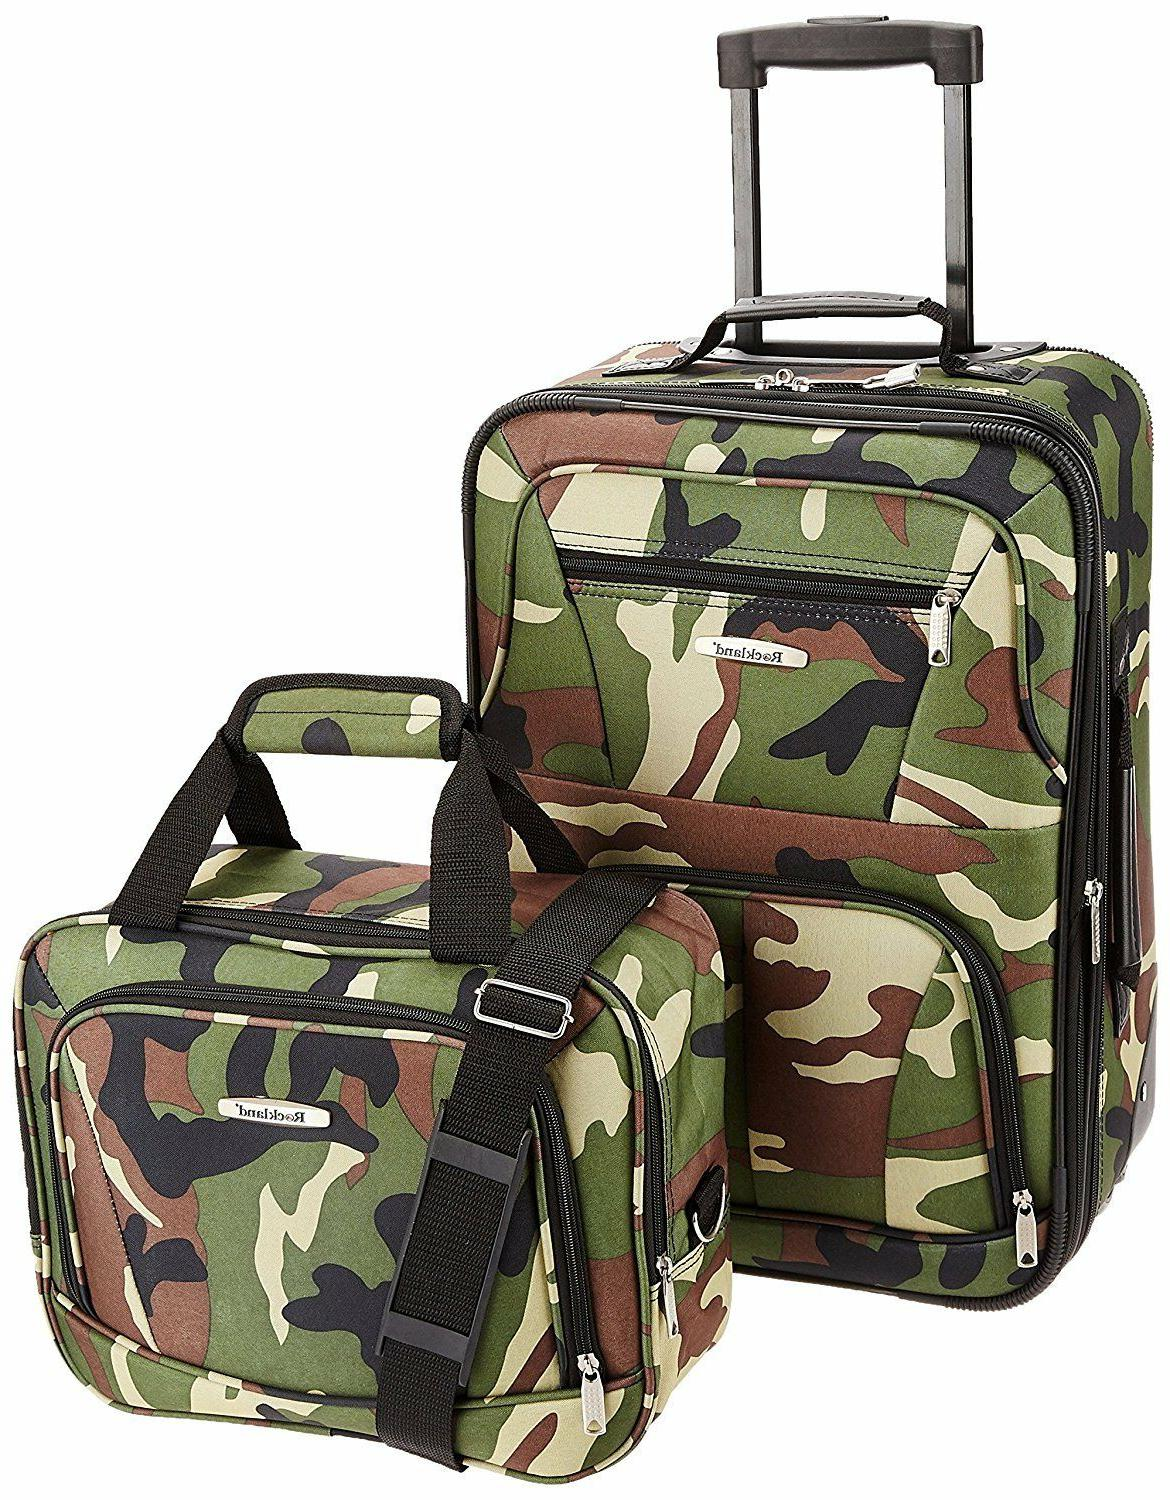 Rockland Luggage Set, Size,Zipper,Travel,Clothes,Security,Shoes,Bags